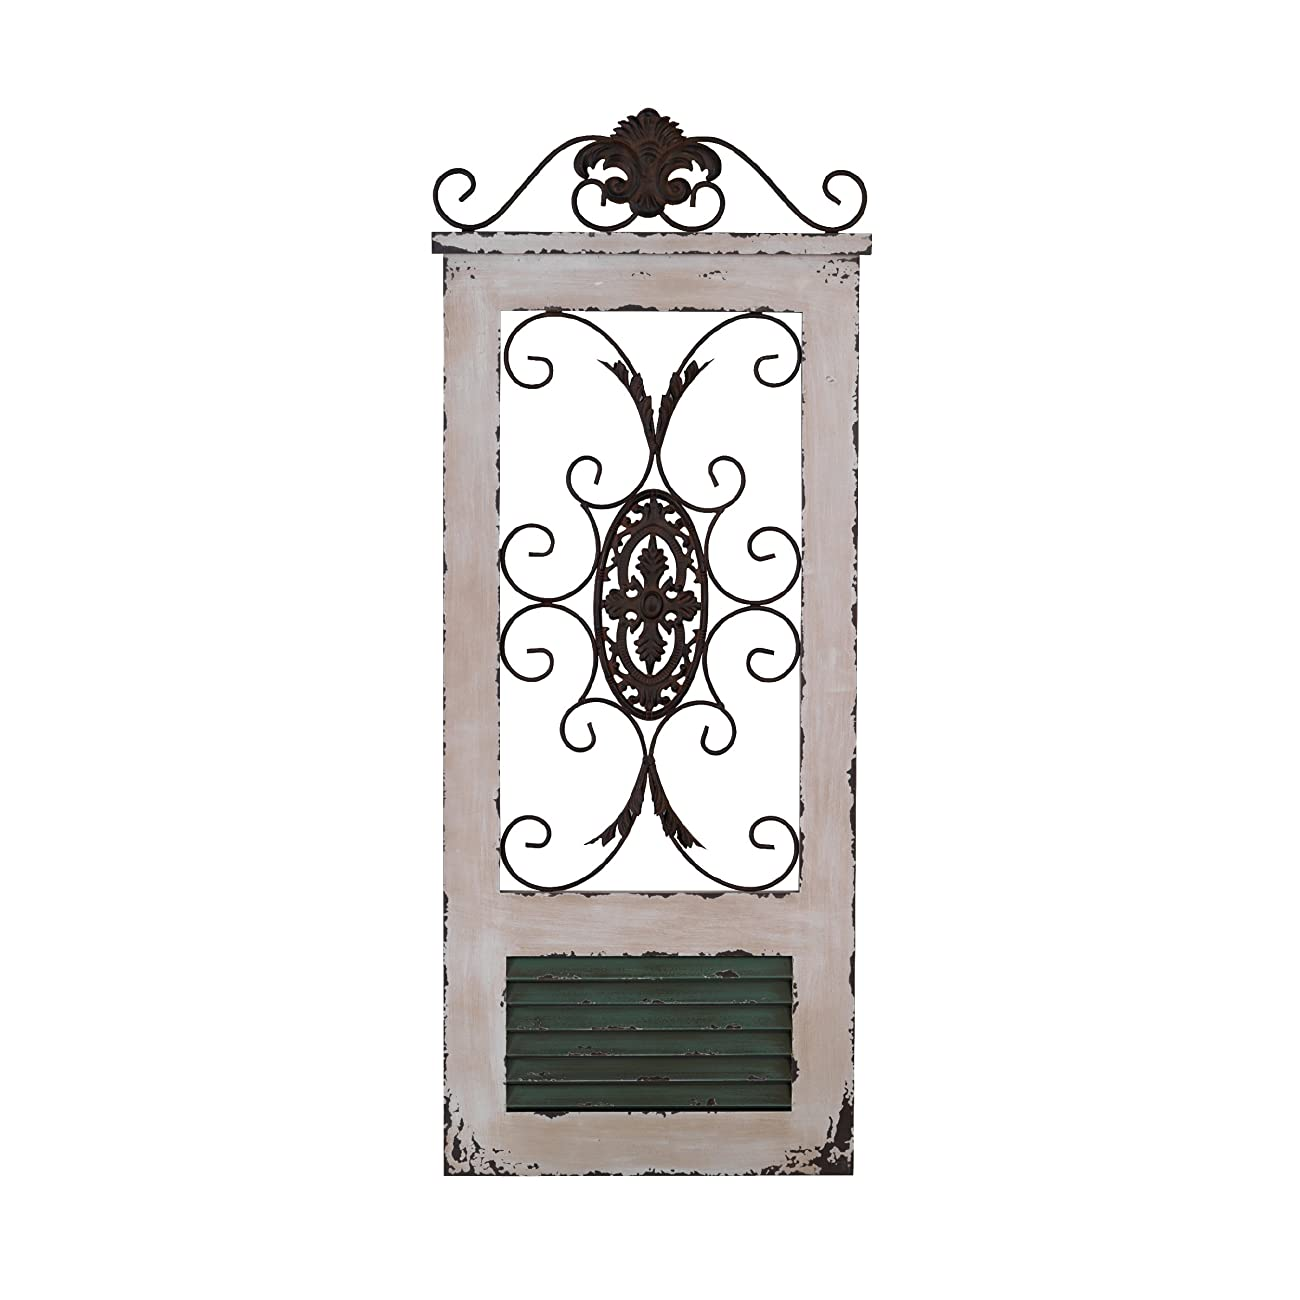 Elements Regal Gate Word and Metal Decorative Wall Decor 0